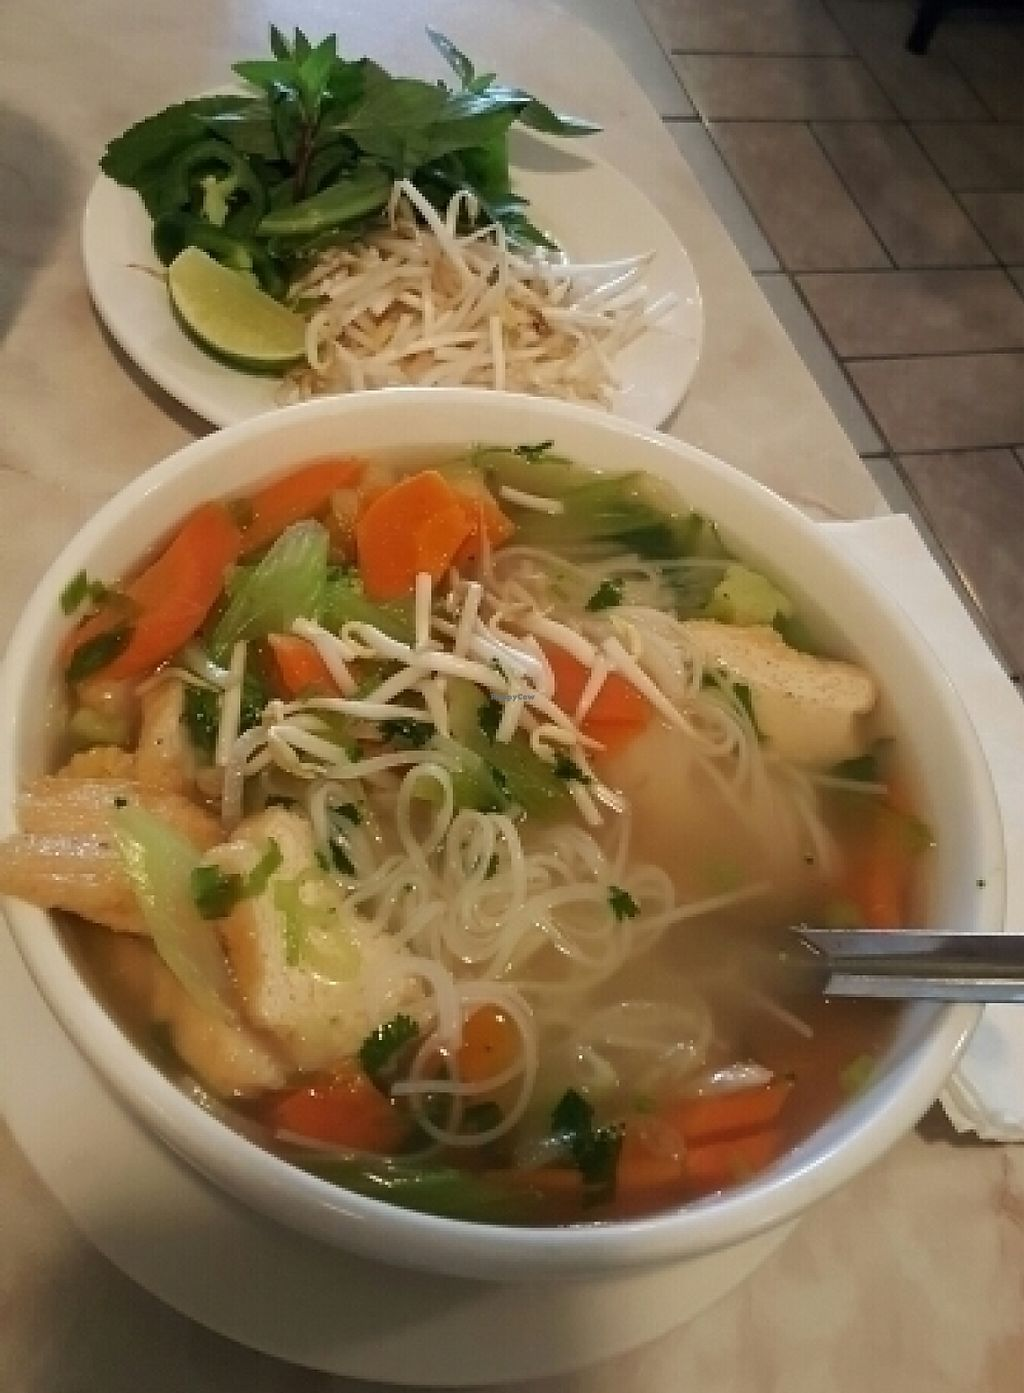 """Photo of Bambu Vietnamese Cuisine  by <a href=""""/members/profile/0verdrive"""">0verdrive</a> <br/>Vegan pho!!! Not on menu ask for it <br/> July 31, 2016  - <a href='/contact/abuse/image/36971/207211'>Report</a>"""